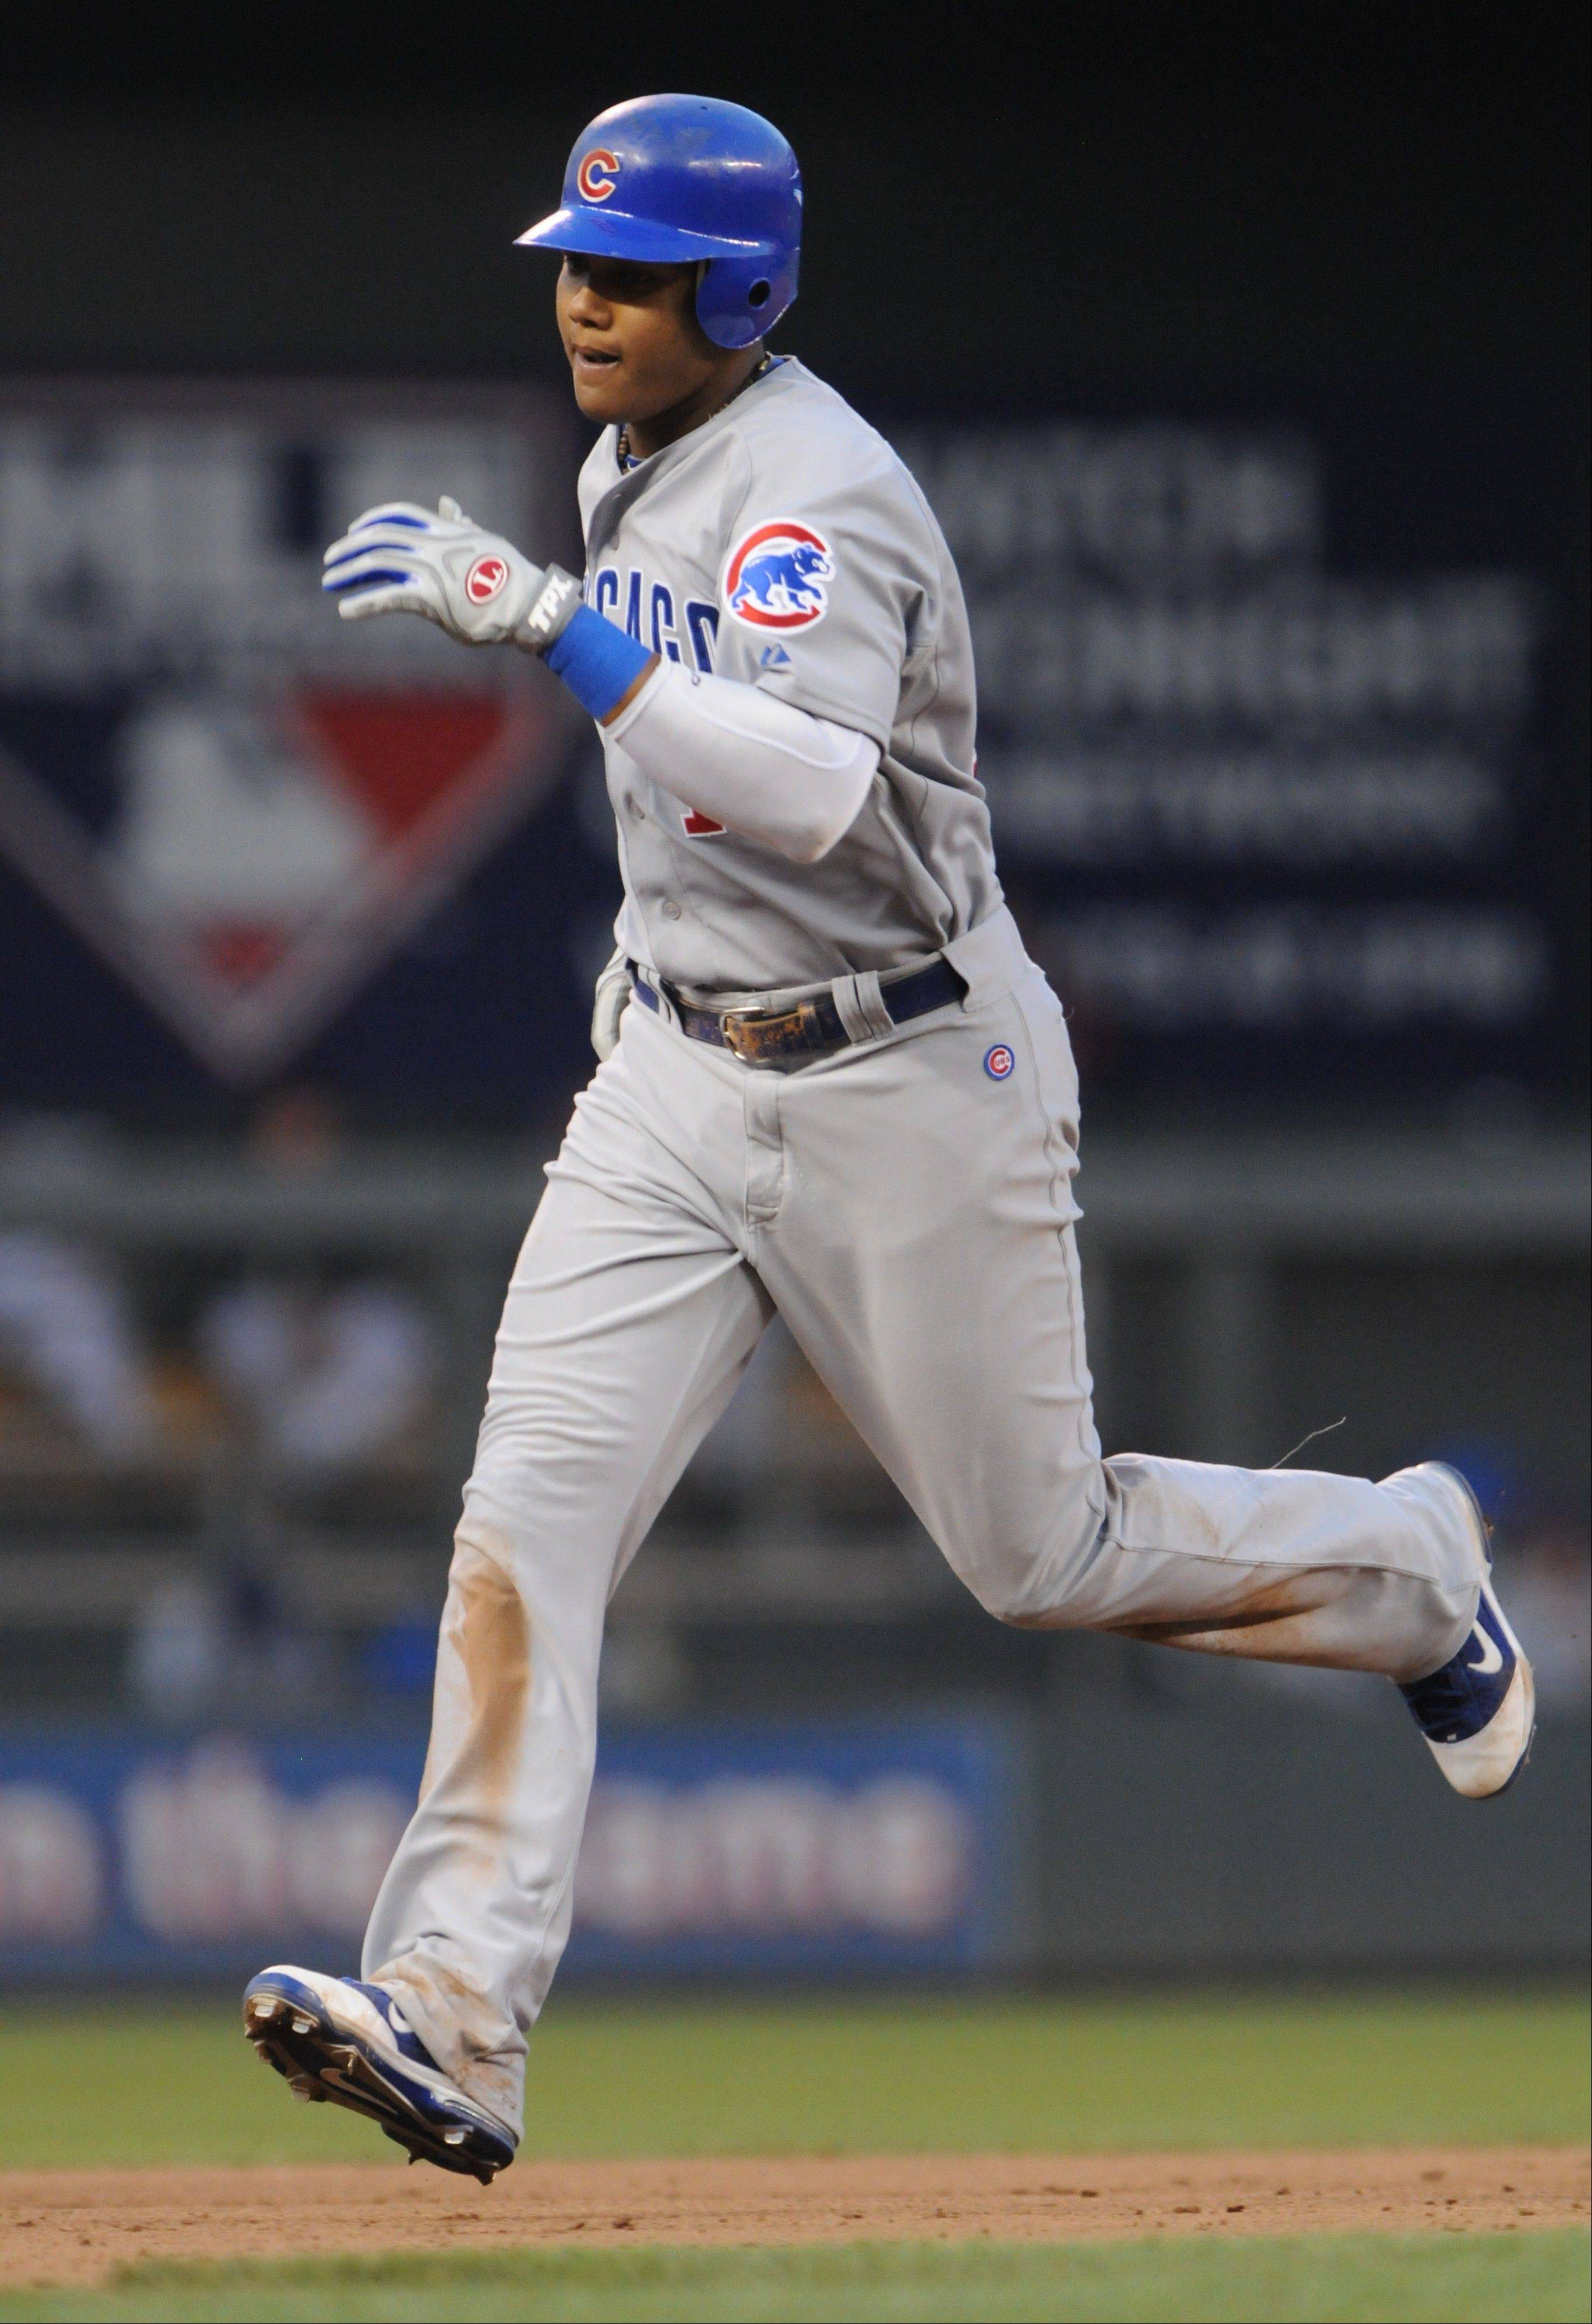 Last season at this point Cubs shortstop Starlin Castro had 2 home runs and finished the year with 10. This time around he already has 7 home runs and played some solid defense.